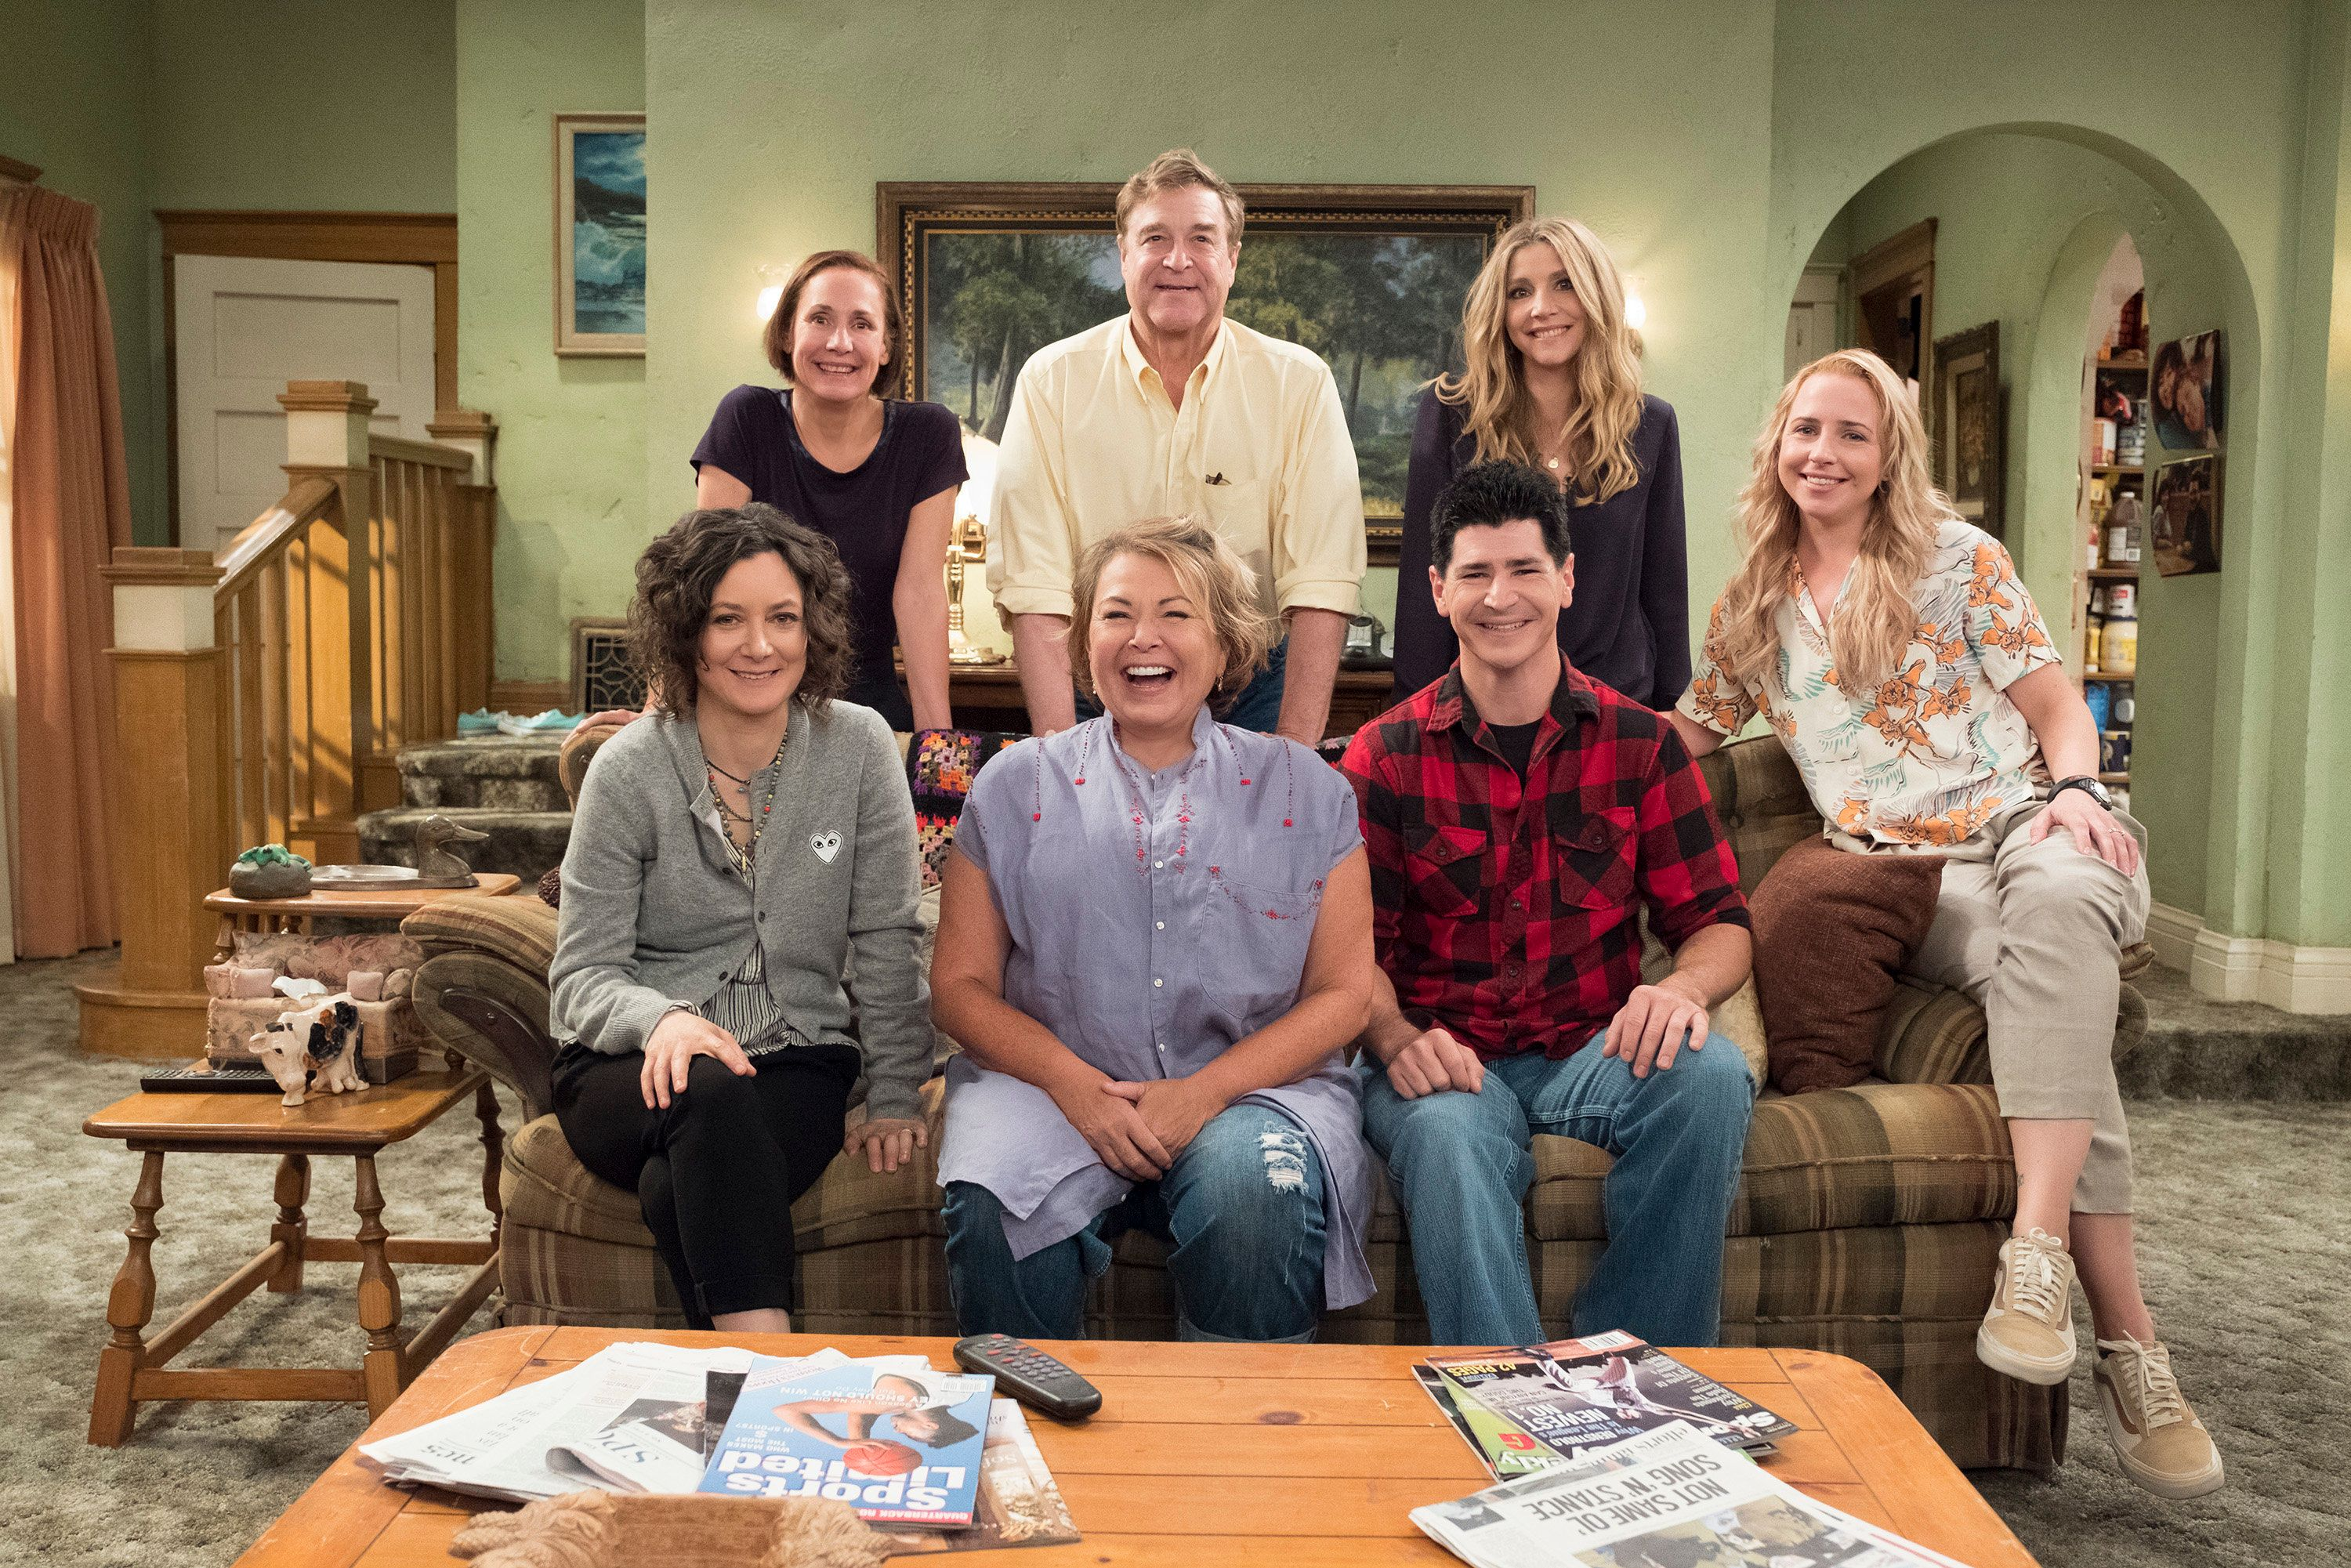 Roseanne reboot sets premiere date for ABC